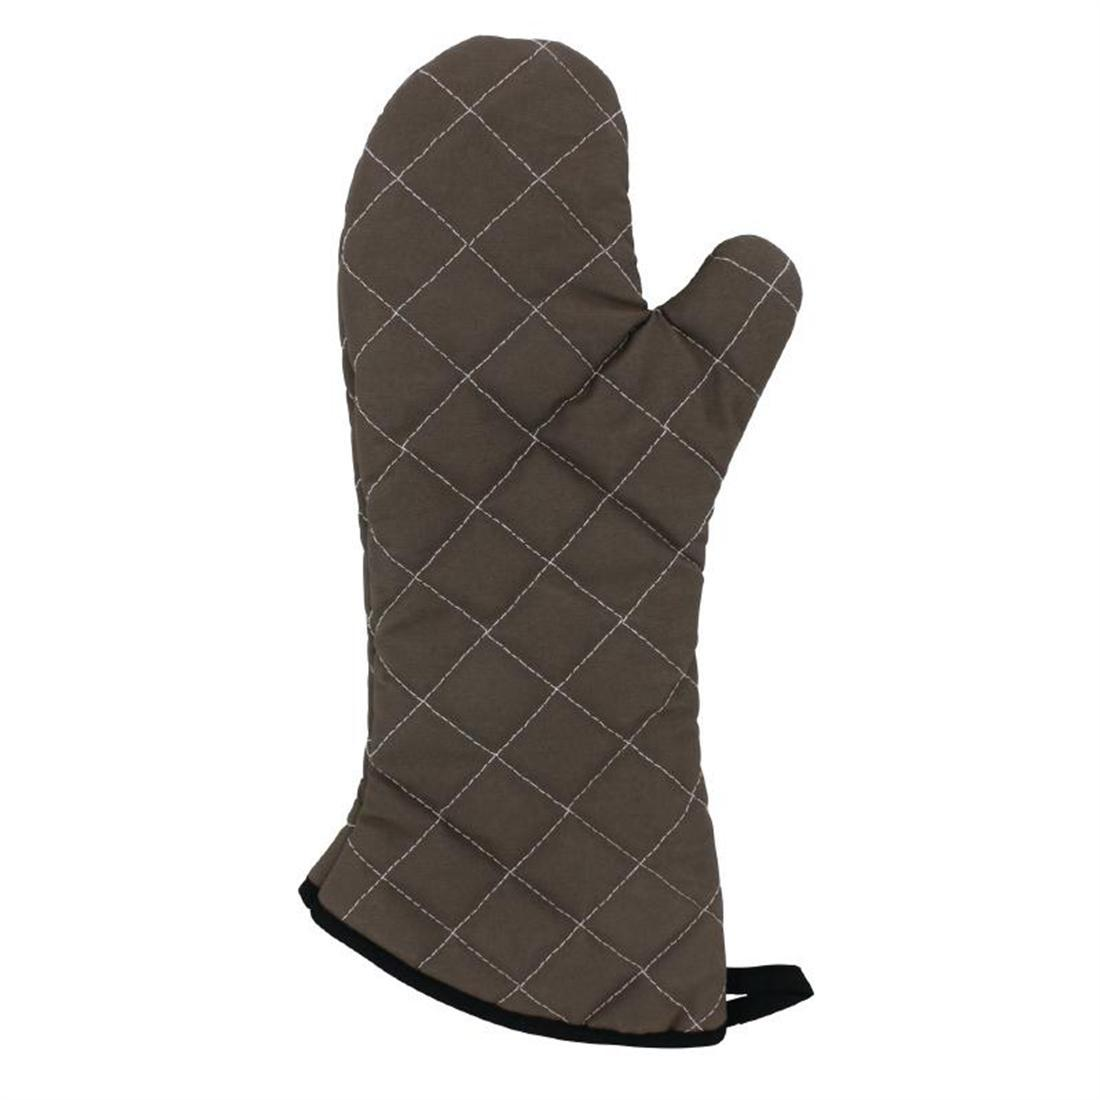 "Vogue Flame Retardant Tan Oven Mitt 17"" - Each - CL583"